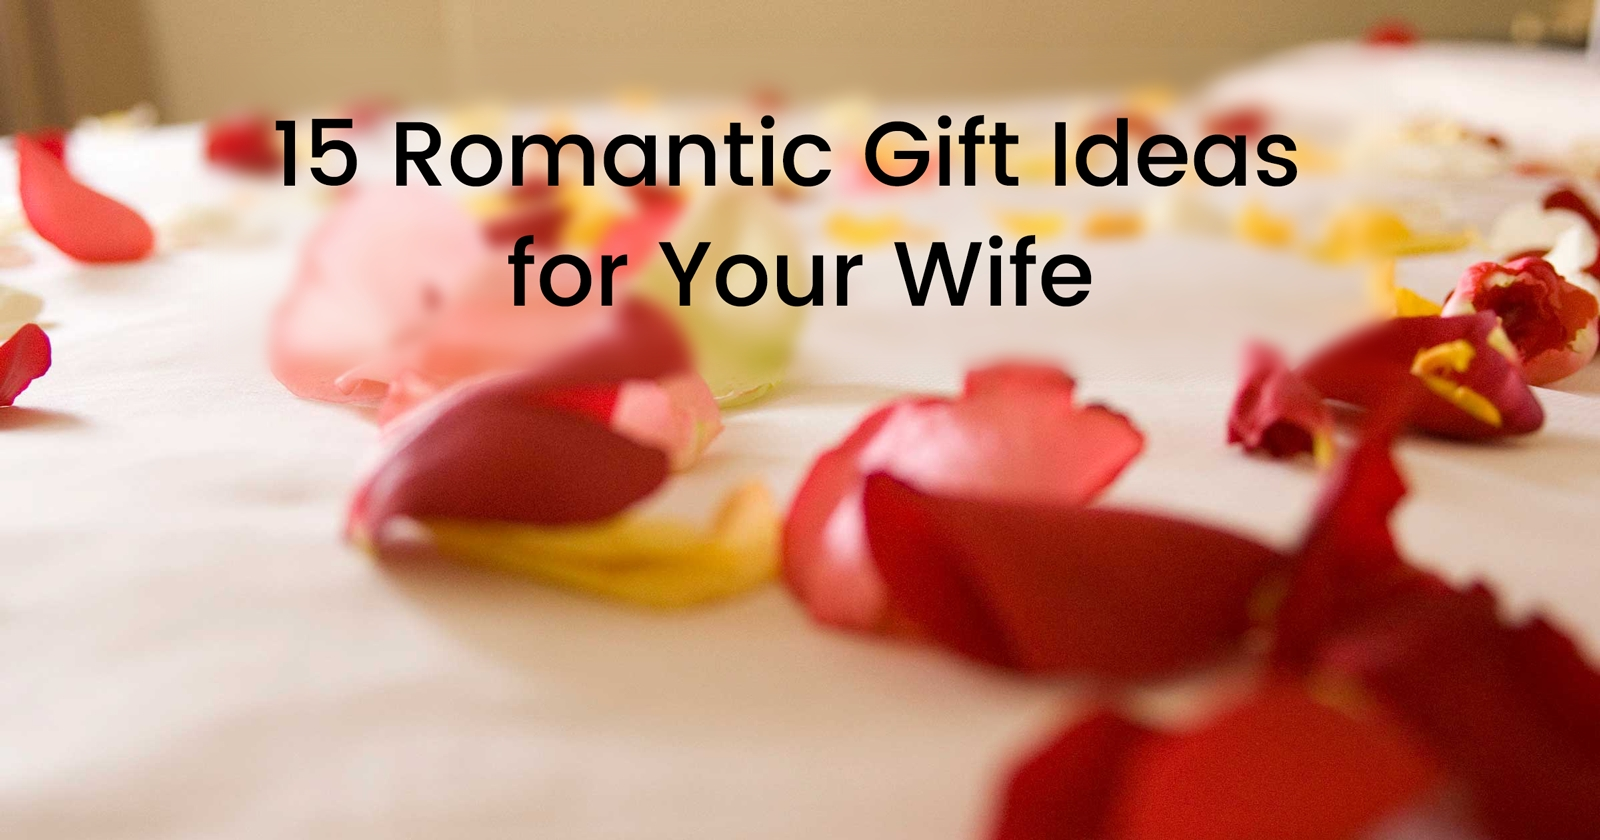 10 Beautiful Birthday Ideas For Your Wife 15 romantic gift ideas for your wife gift help 2 2020